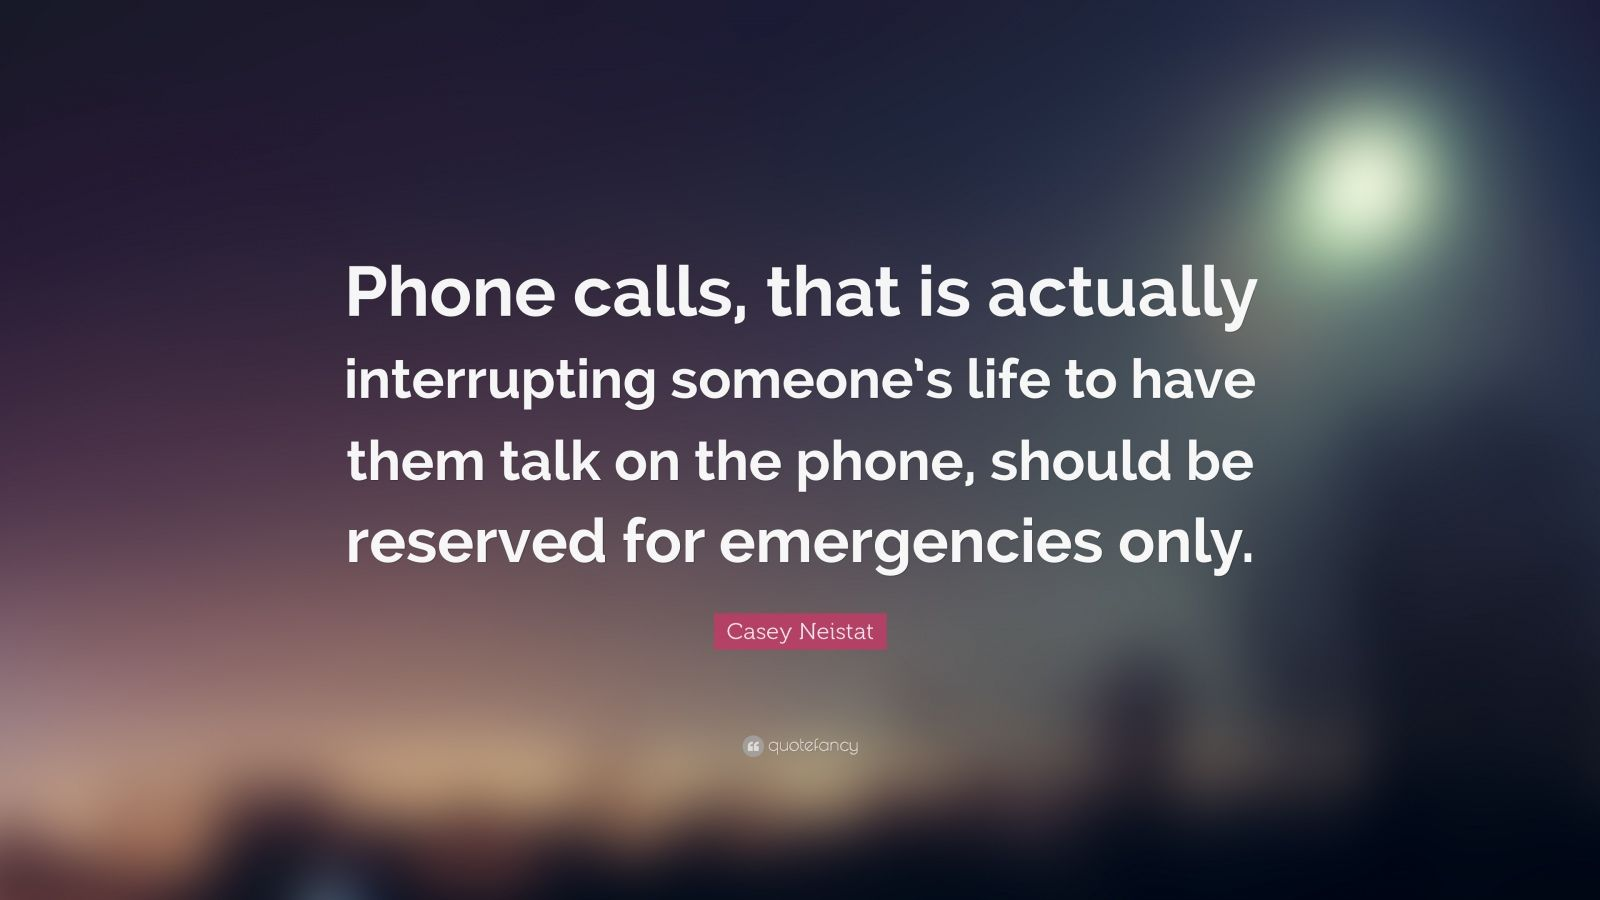 """Casey Neistat Quote: """"Phone calls, that is actually interrupting someone's life to have them talk on the phone, should be reserved for emergencies only."""""""